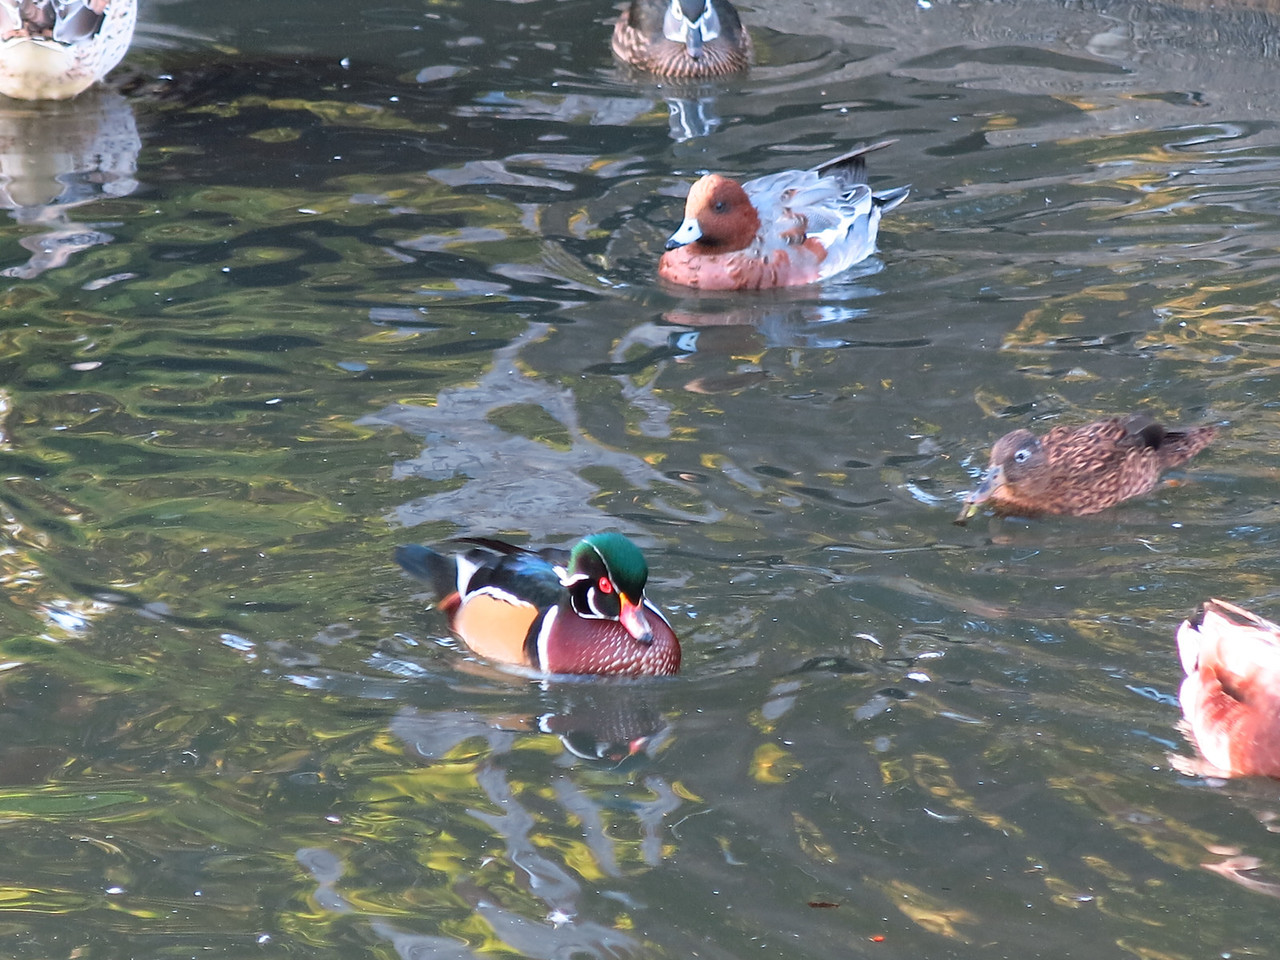 There is an aviary in the city park.  The duck in the middle has impressive colors.